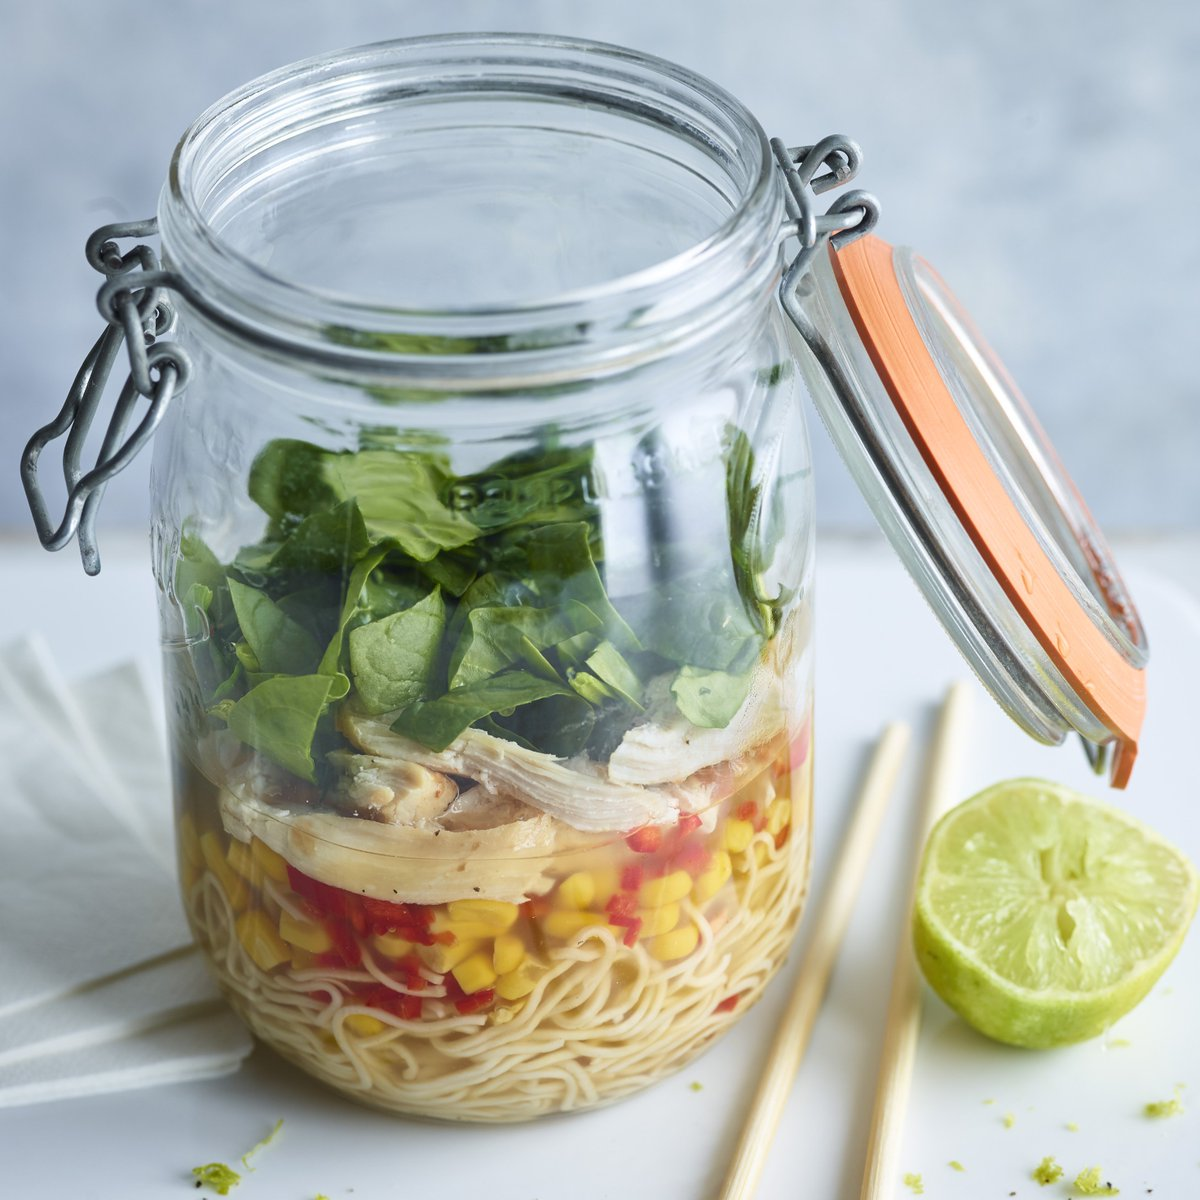 All you need is a kettle to make this hot packed lunch. https://www.bbc.com/food/recipes/chicken_and_sweetcorn_44908…